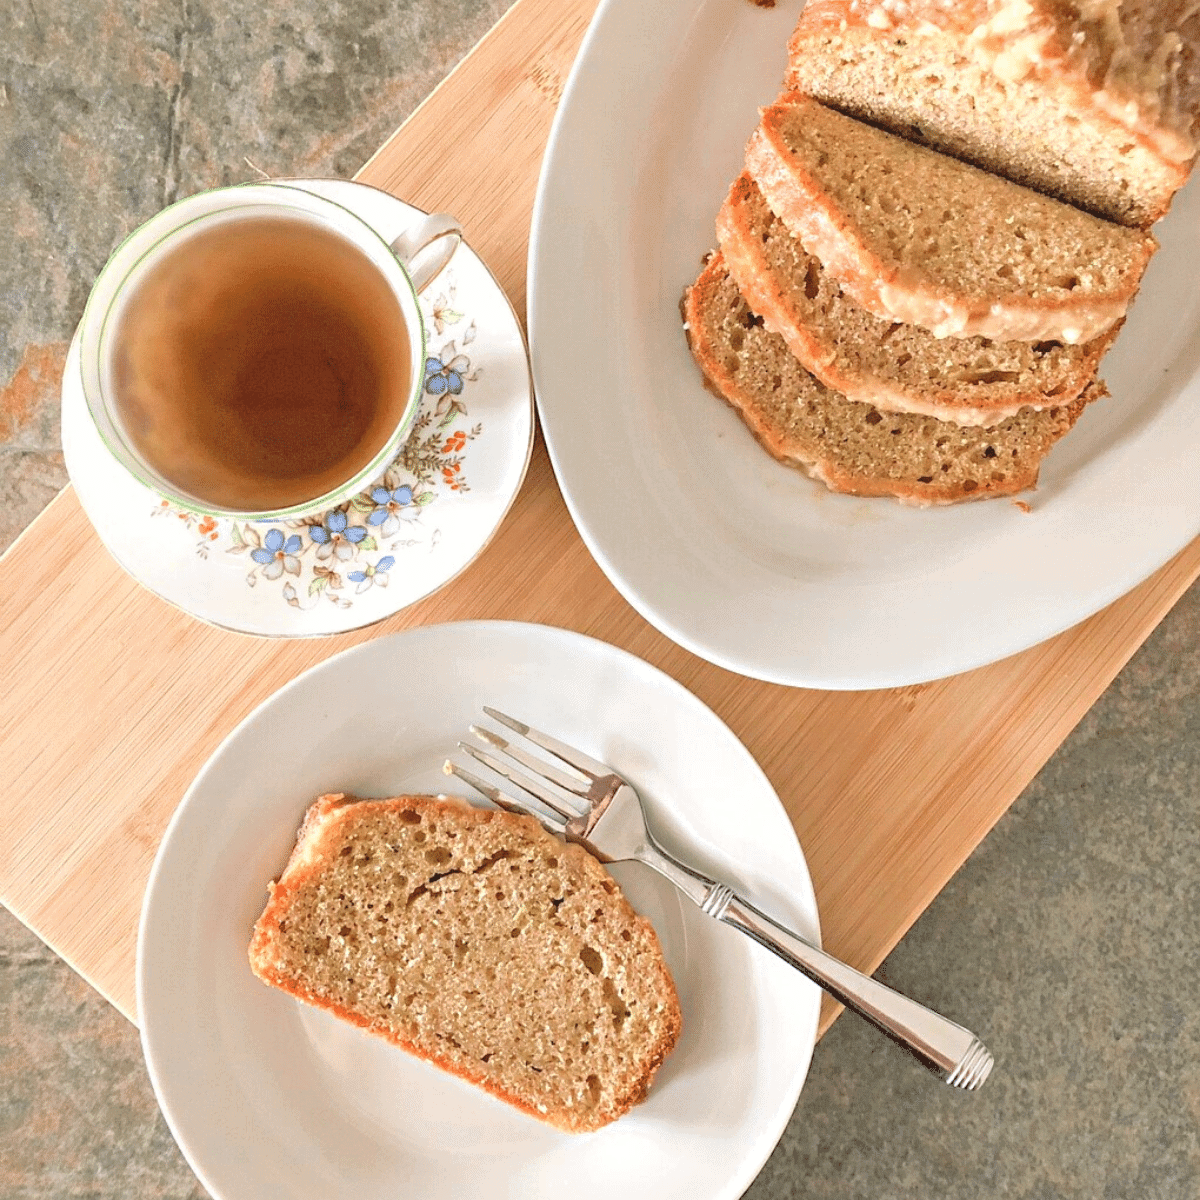 Homemade and moist zucchini bread with cinnamon glaze on a white platter with a slice of bread on a white plate with a fork, and a cup to tea, sitting on a wooden cutting board